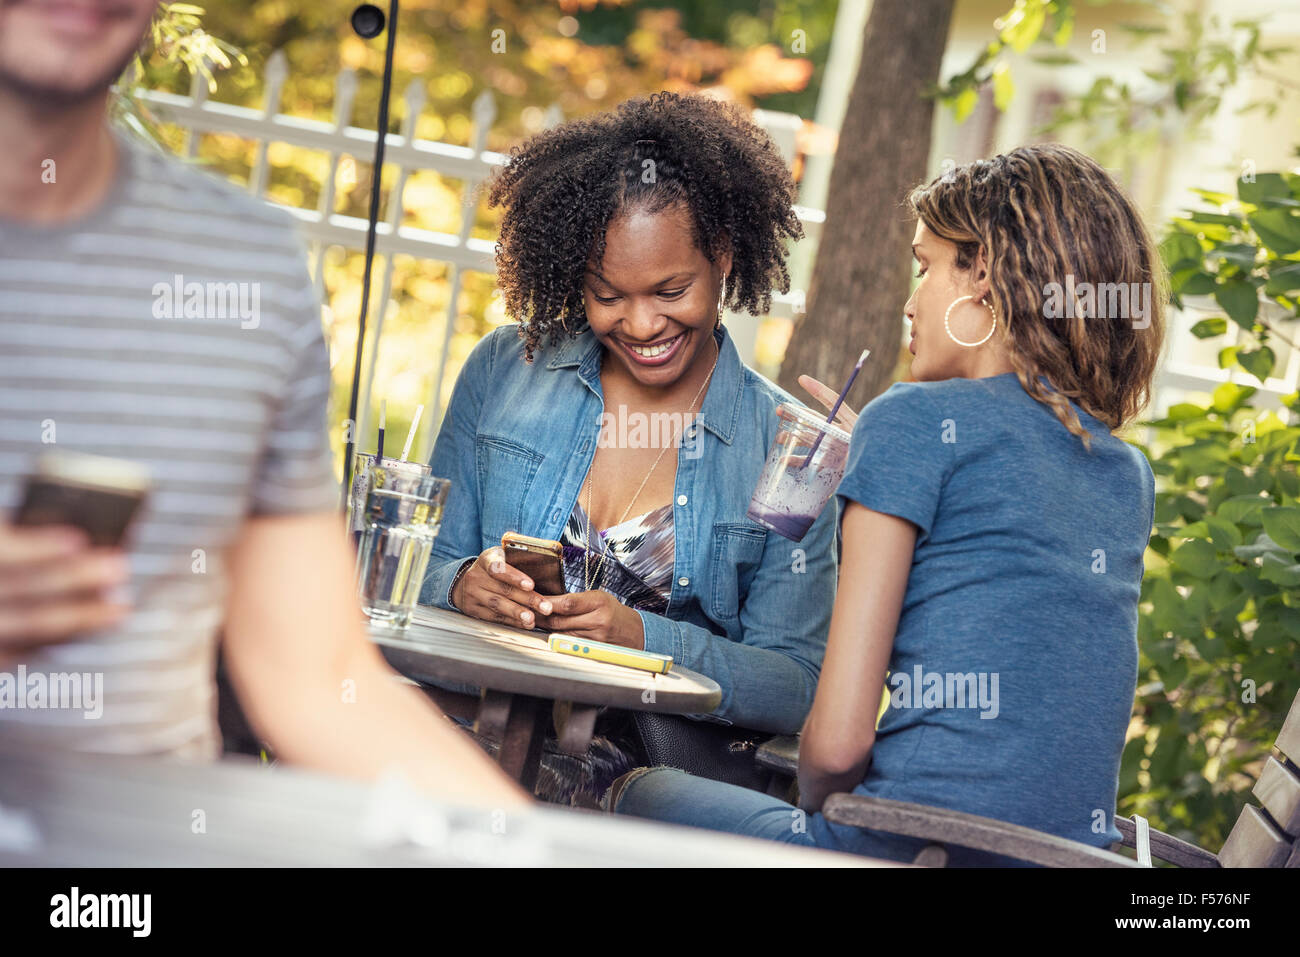 Three people in a cafe diner, two checking their smart phones, - Stock Image